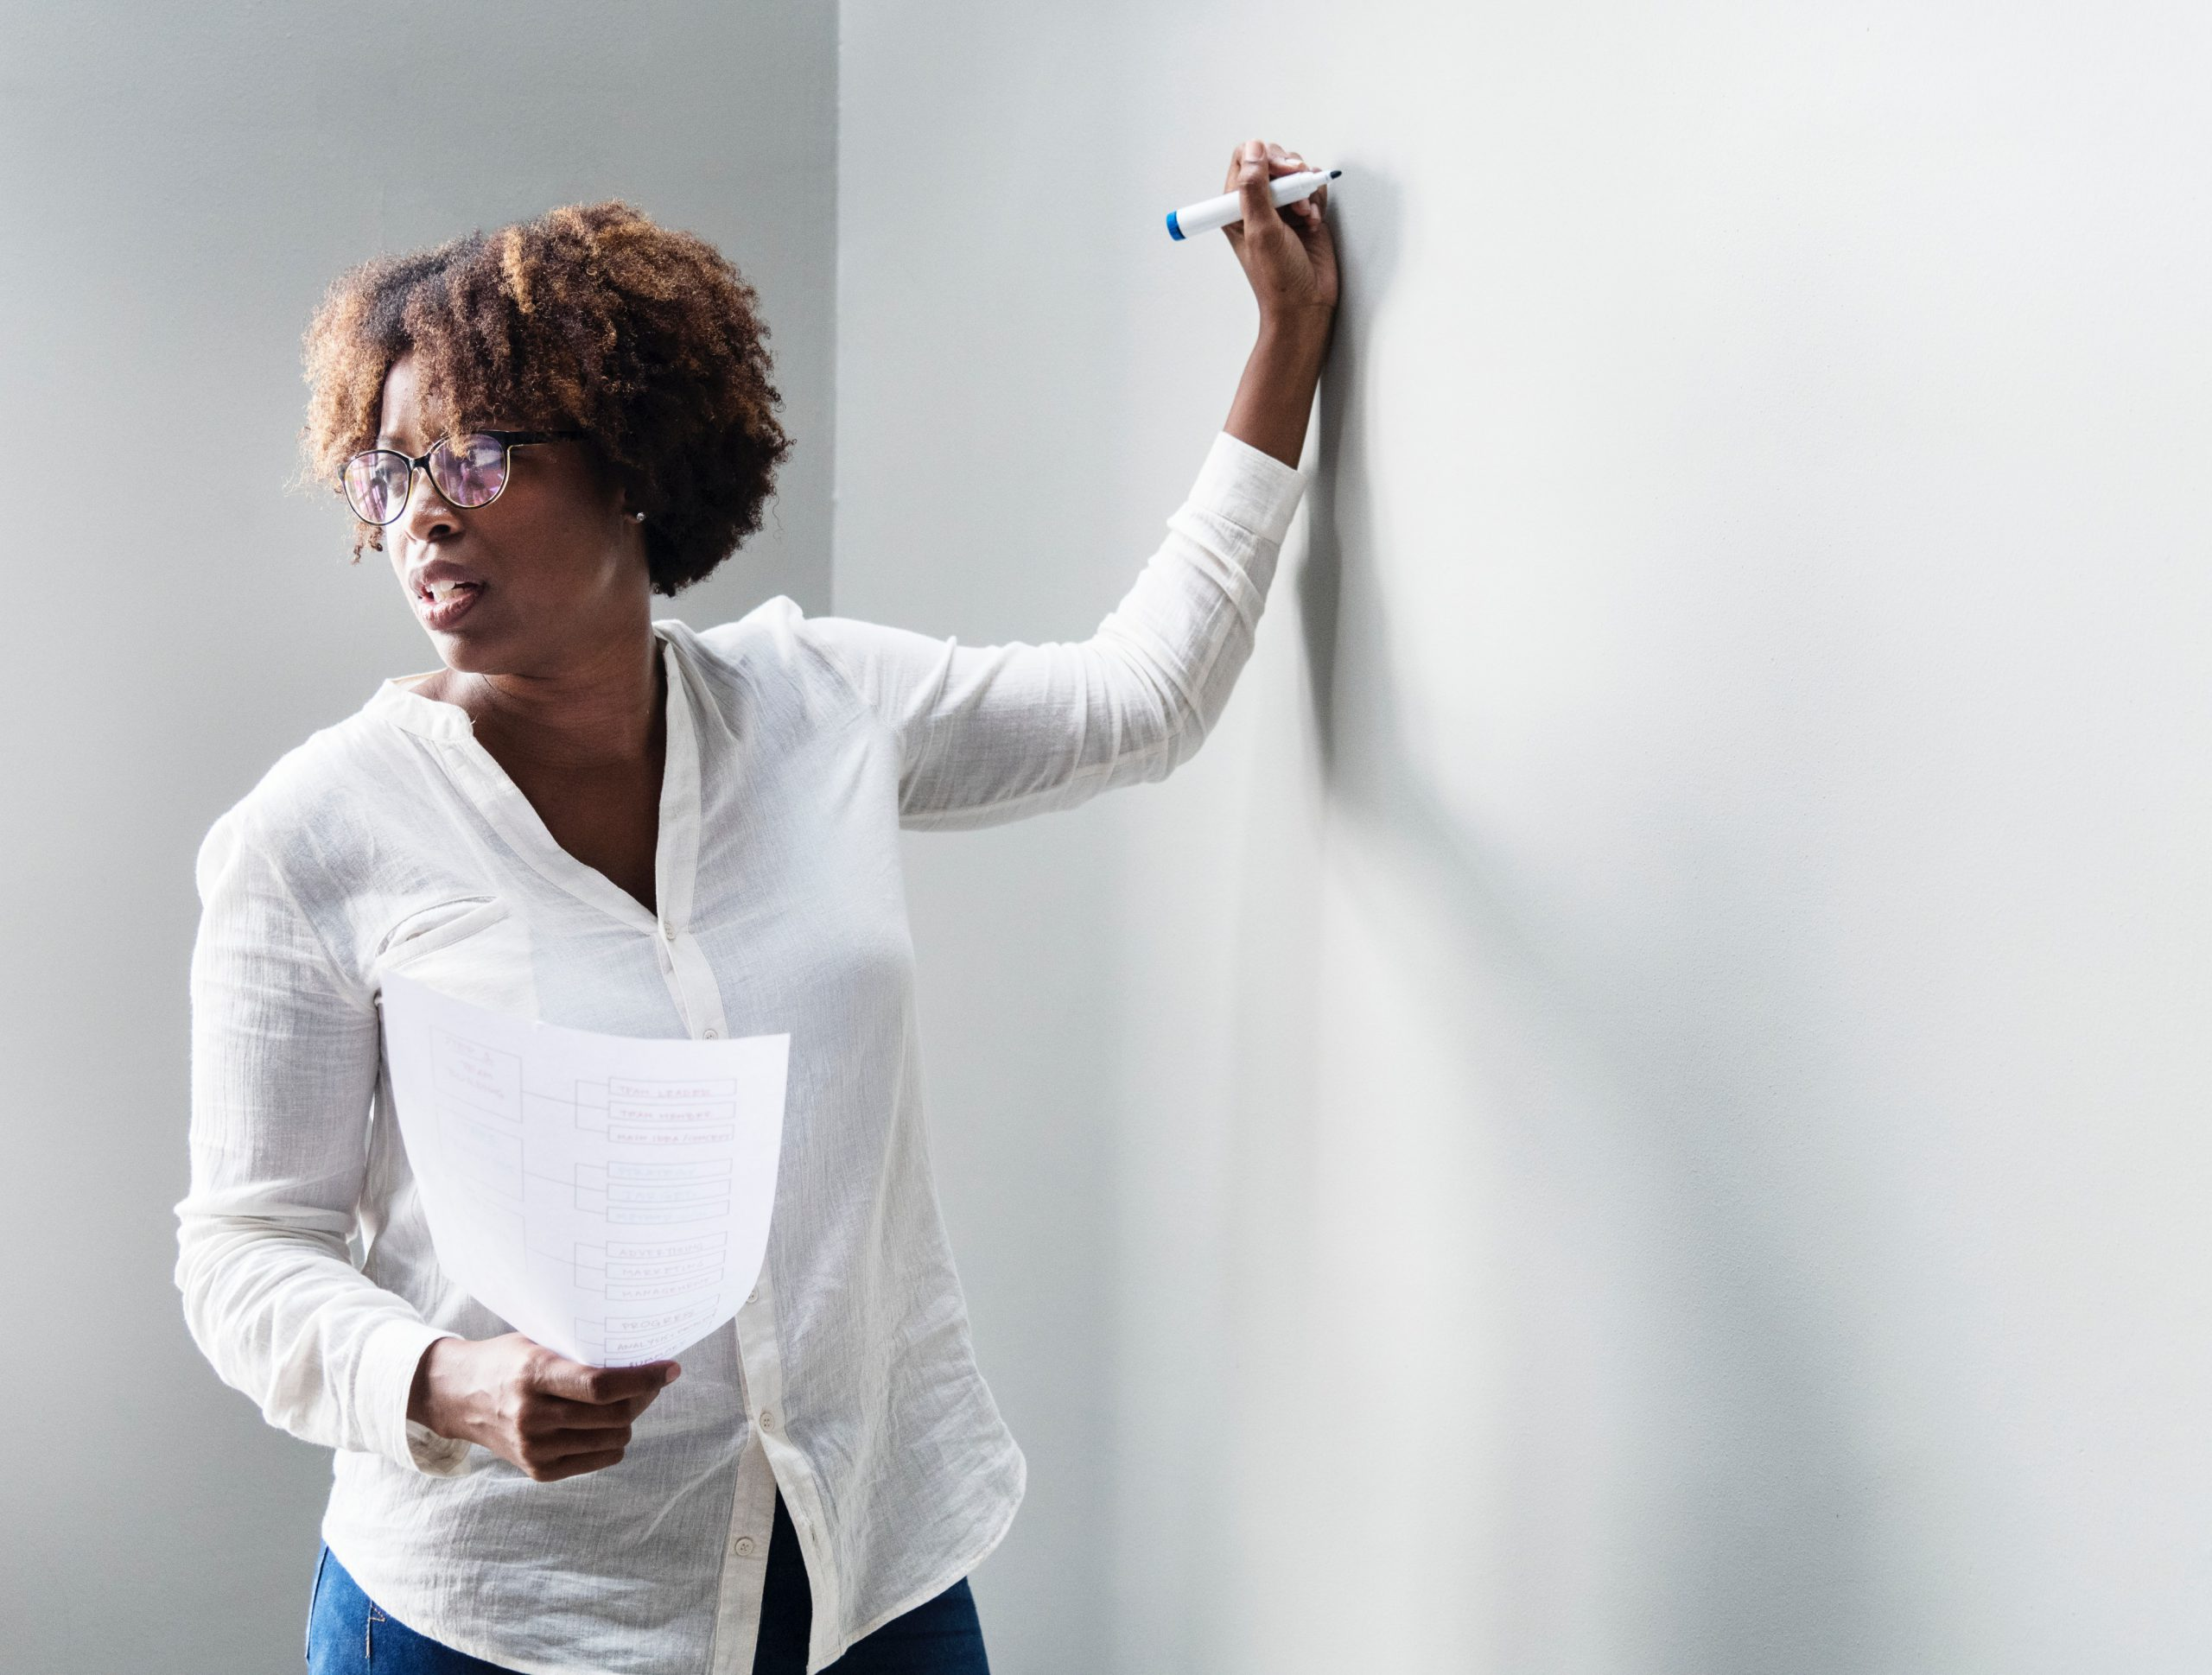 Adult Trainer writing on white board